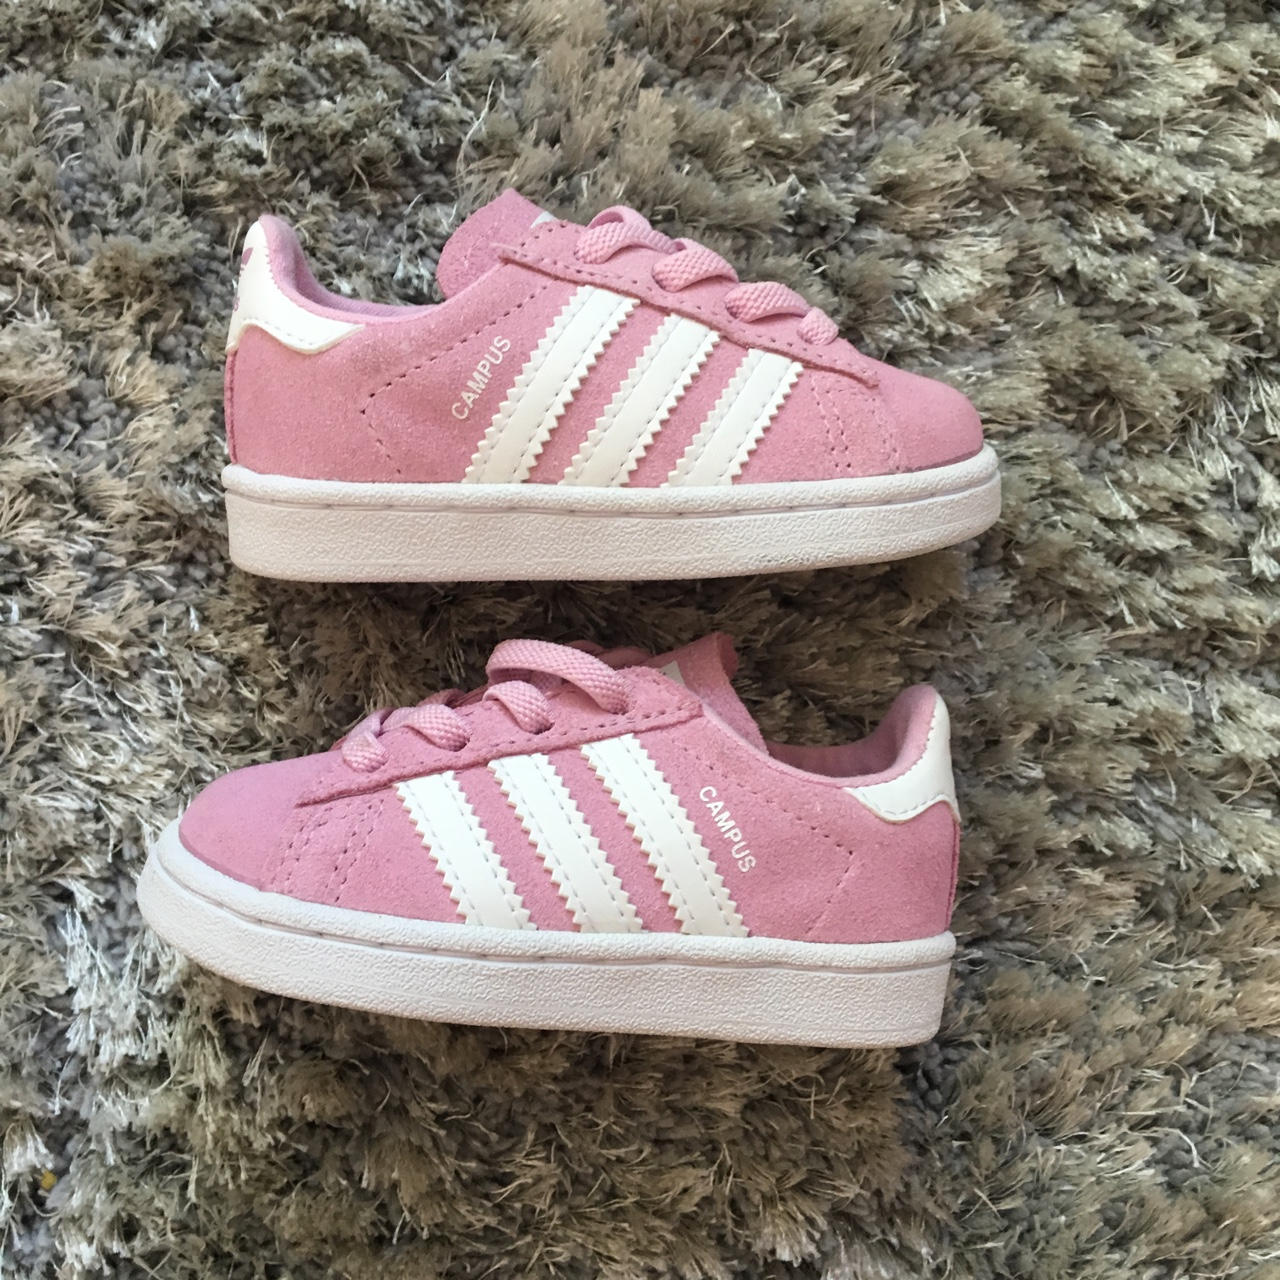 Adidas campus baby trainers, Pink and white , Size...